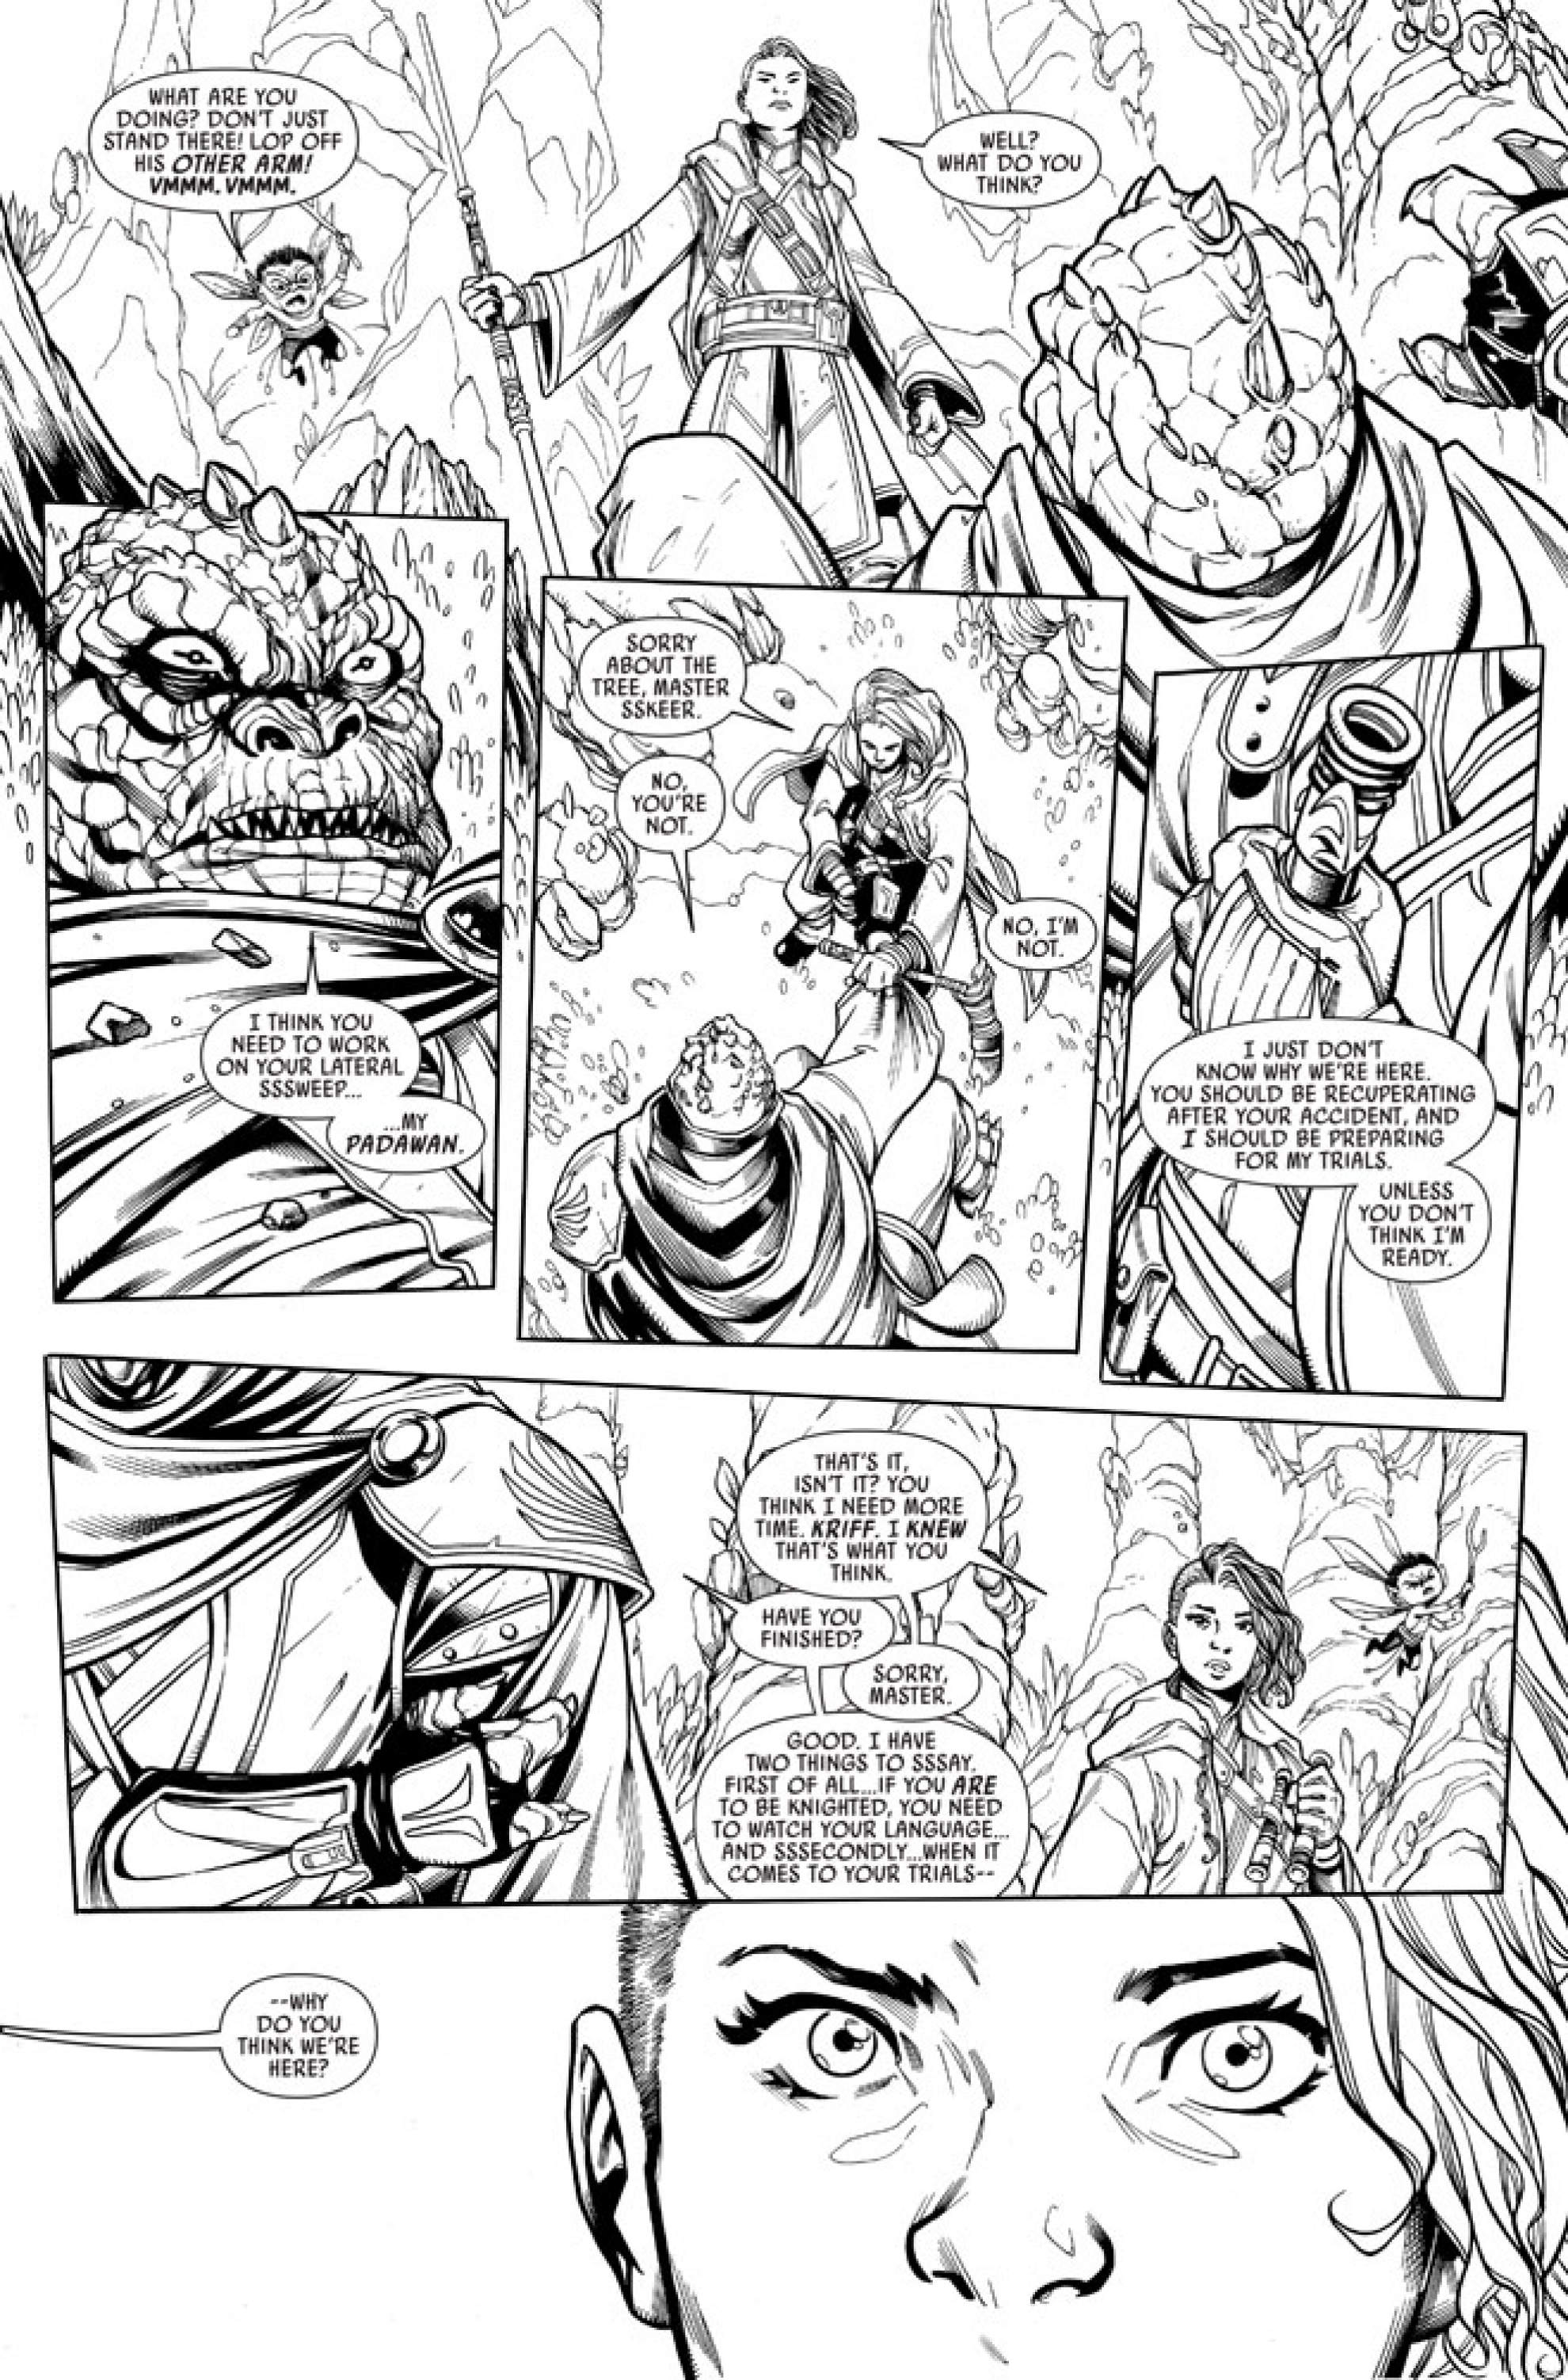 Marvel Star Wars The High Republic 1 Page 04 3rh98fdbiq